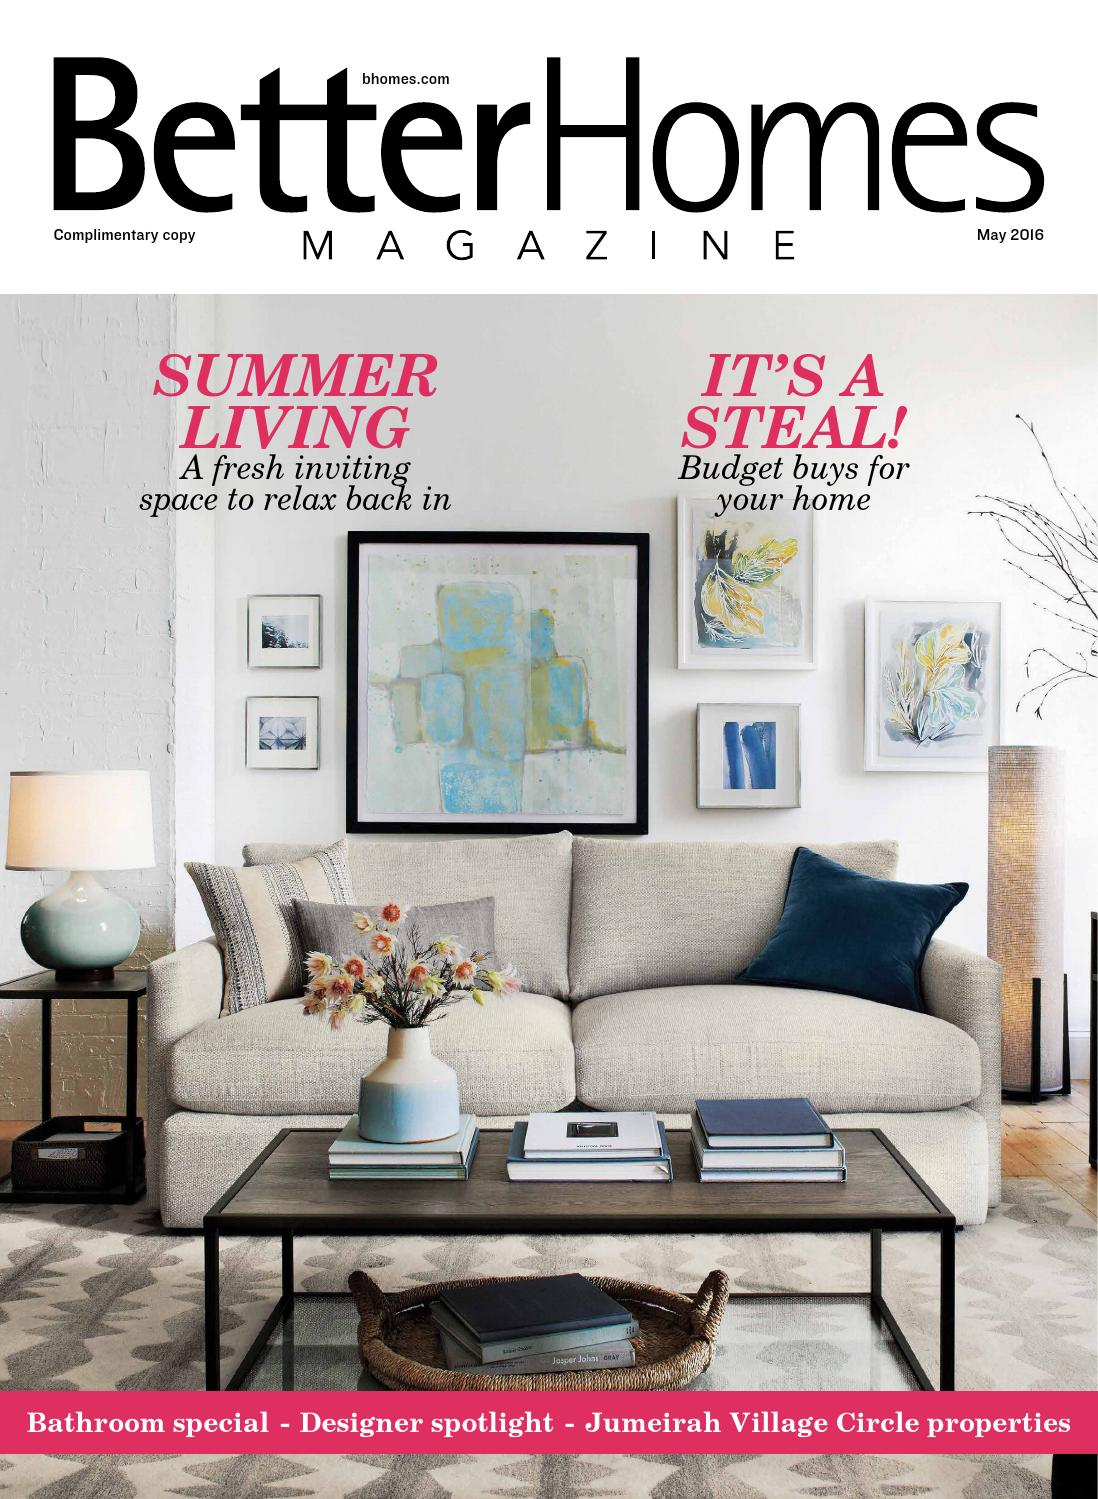 Better homes magazine may 39 16 by hot media issuu for Homes magazines